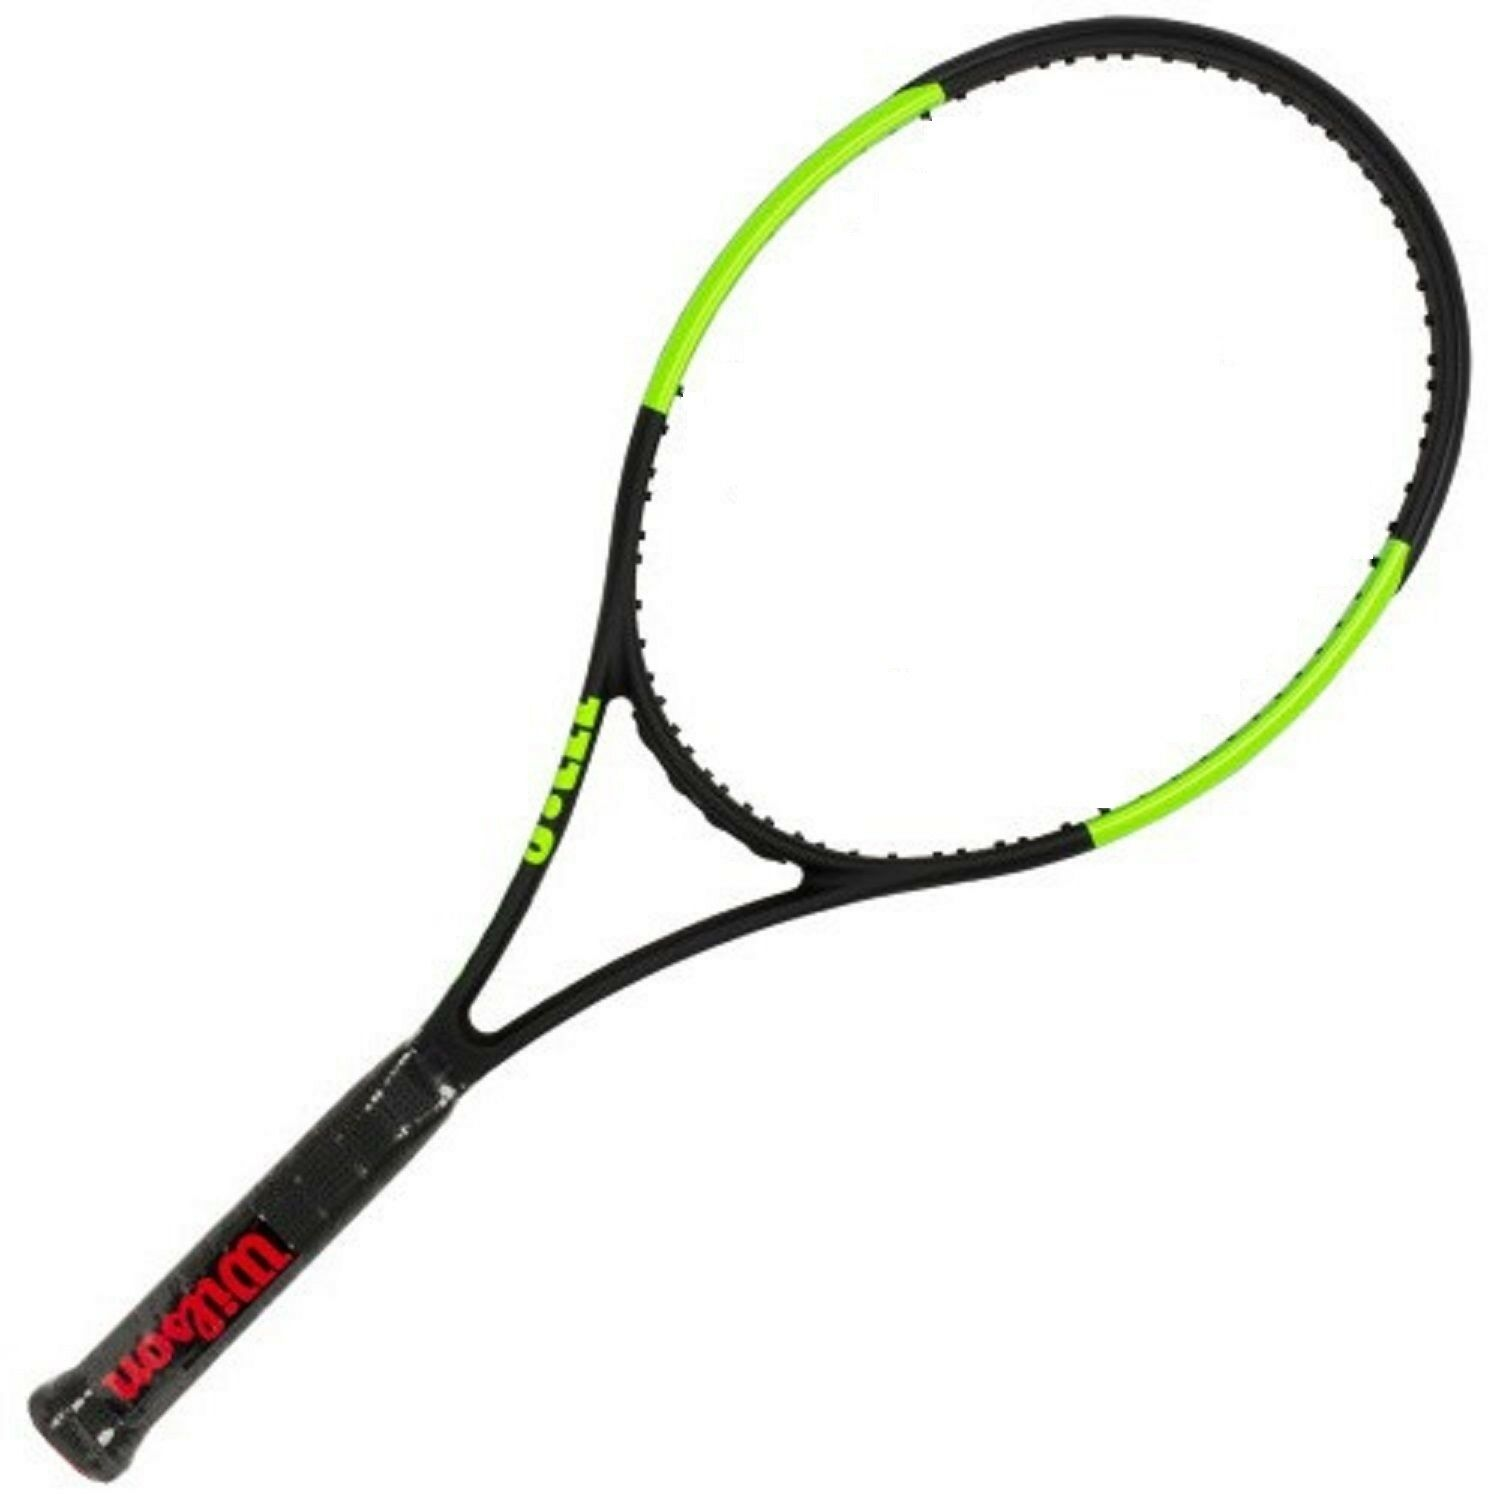 NEW 2018 WILSON BLADE 98S  SPIN  COUNTERVAIL (18X16) TENNIS RACQUET (4 1 4)